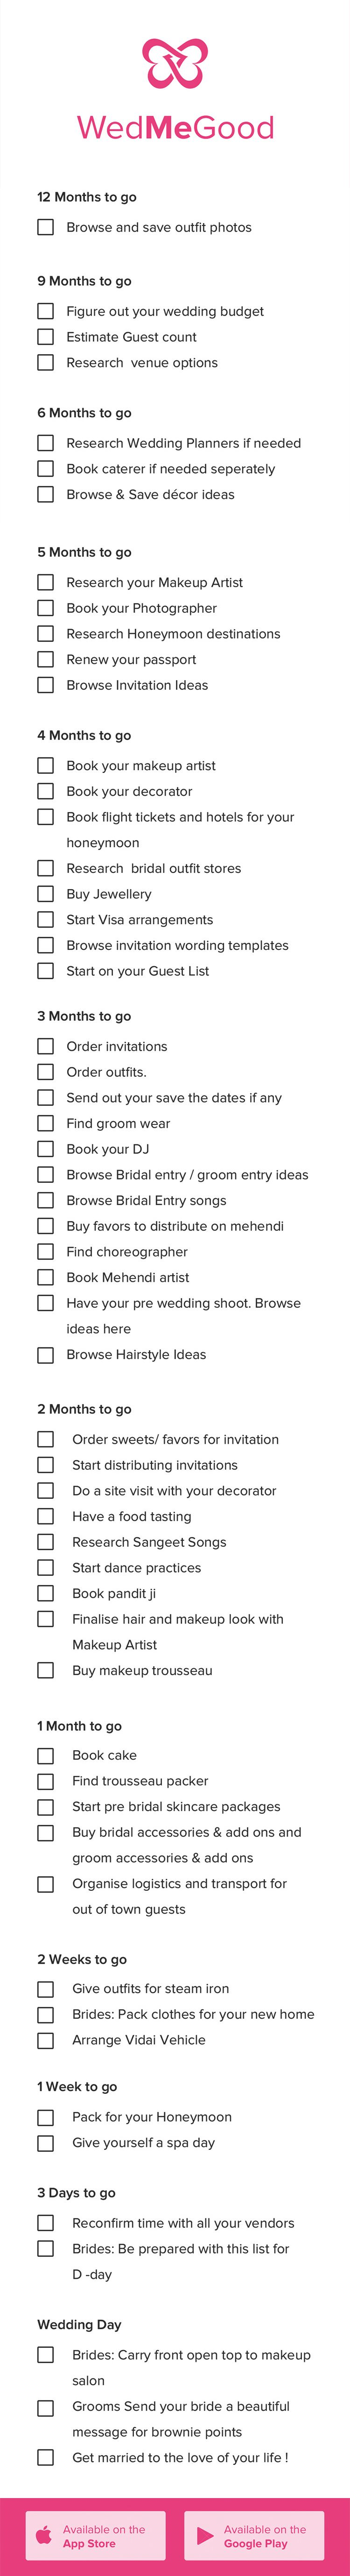 The 12 Month Wedding Checklist Every Indian Bride Needs Pinterest